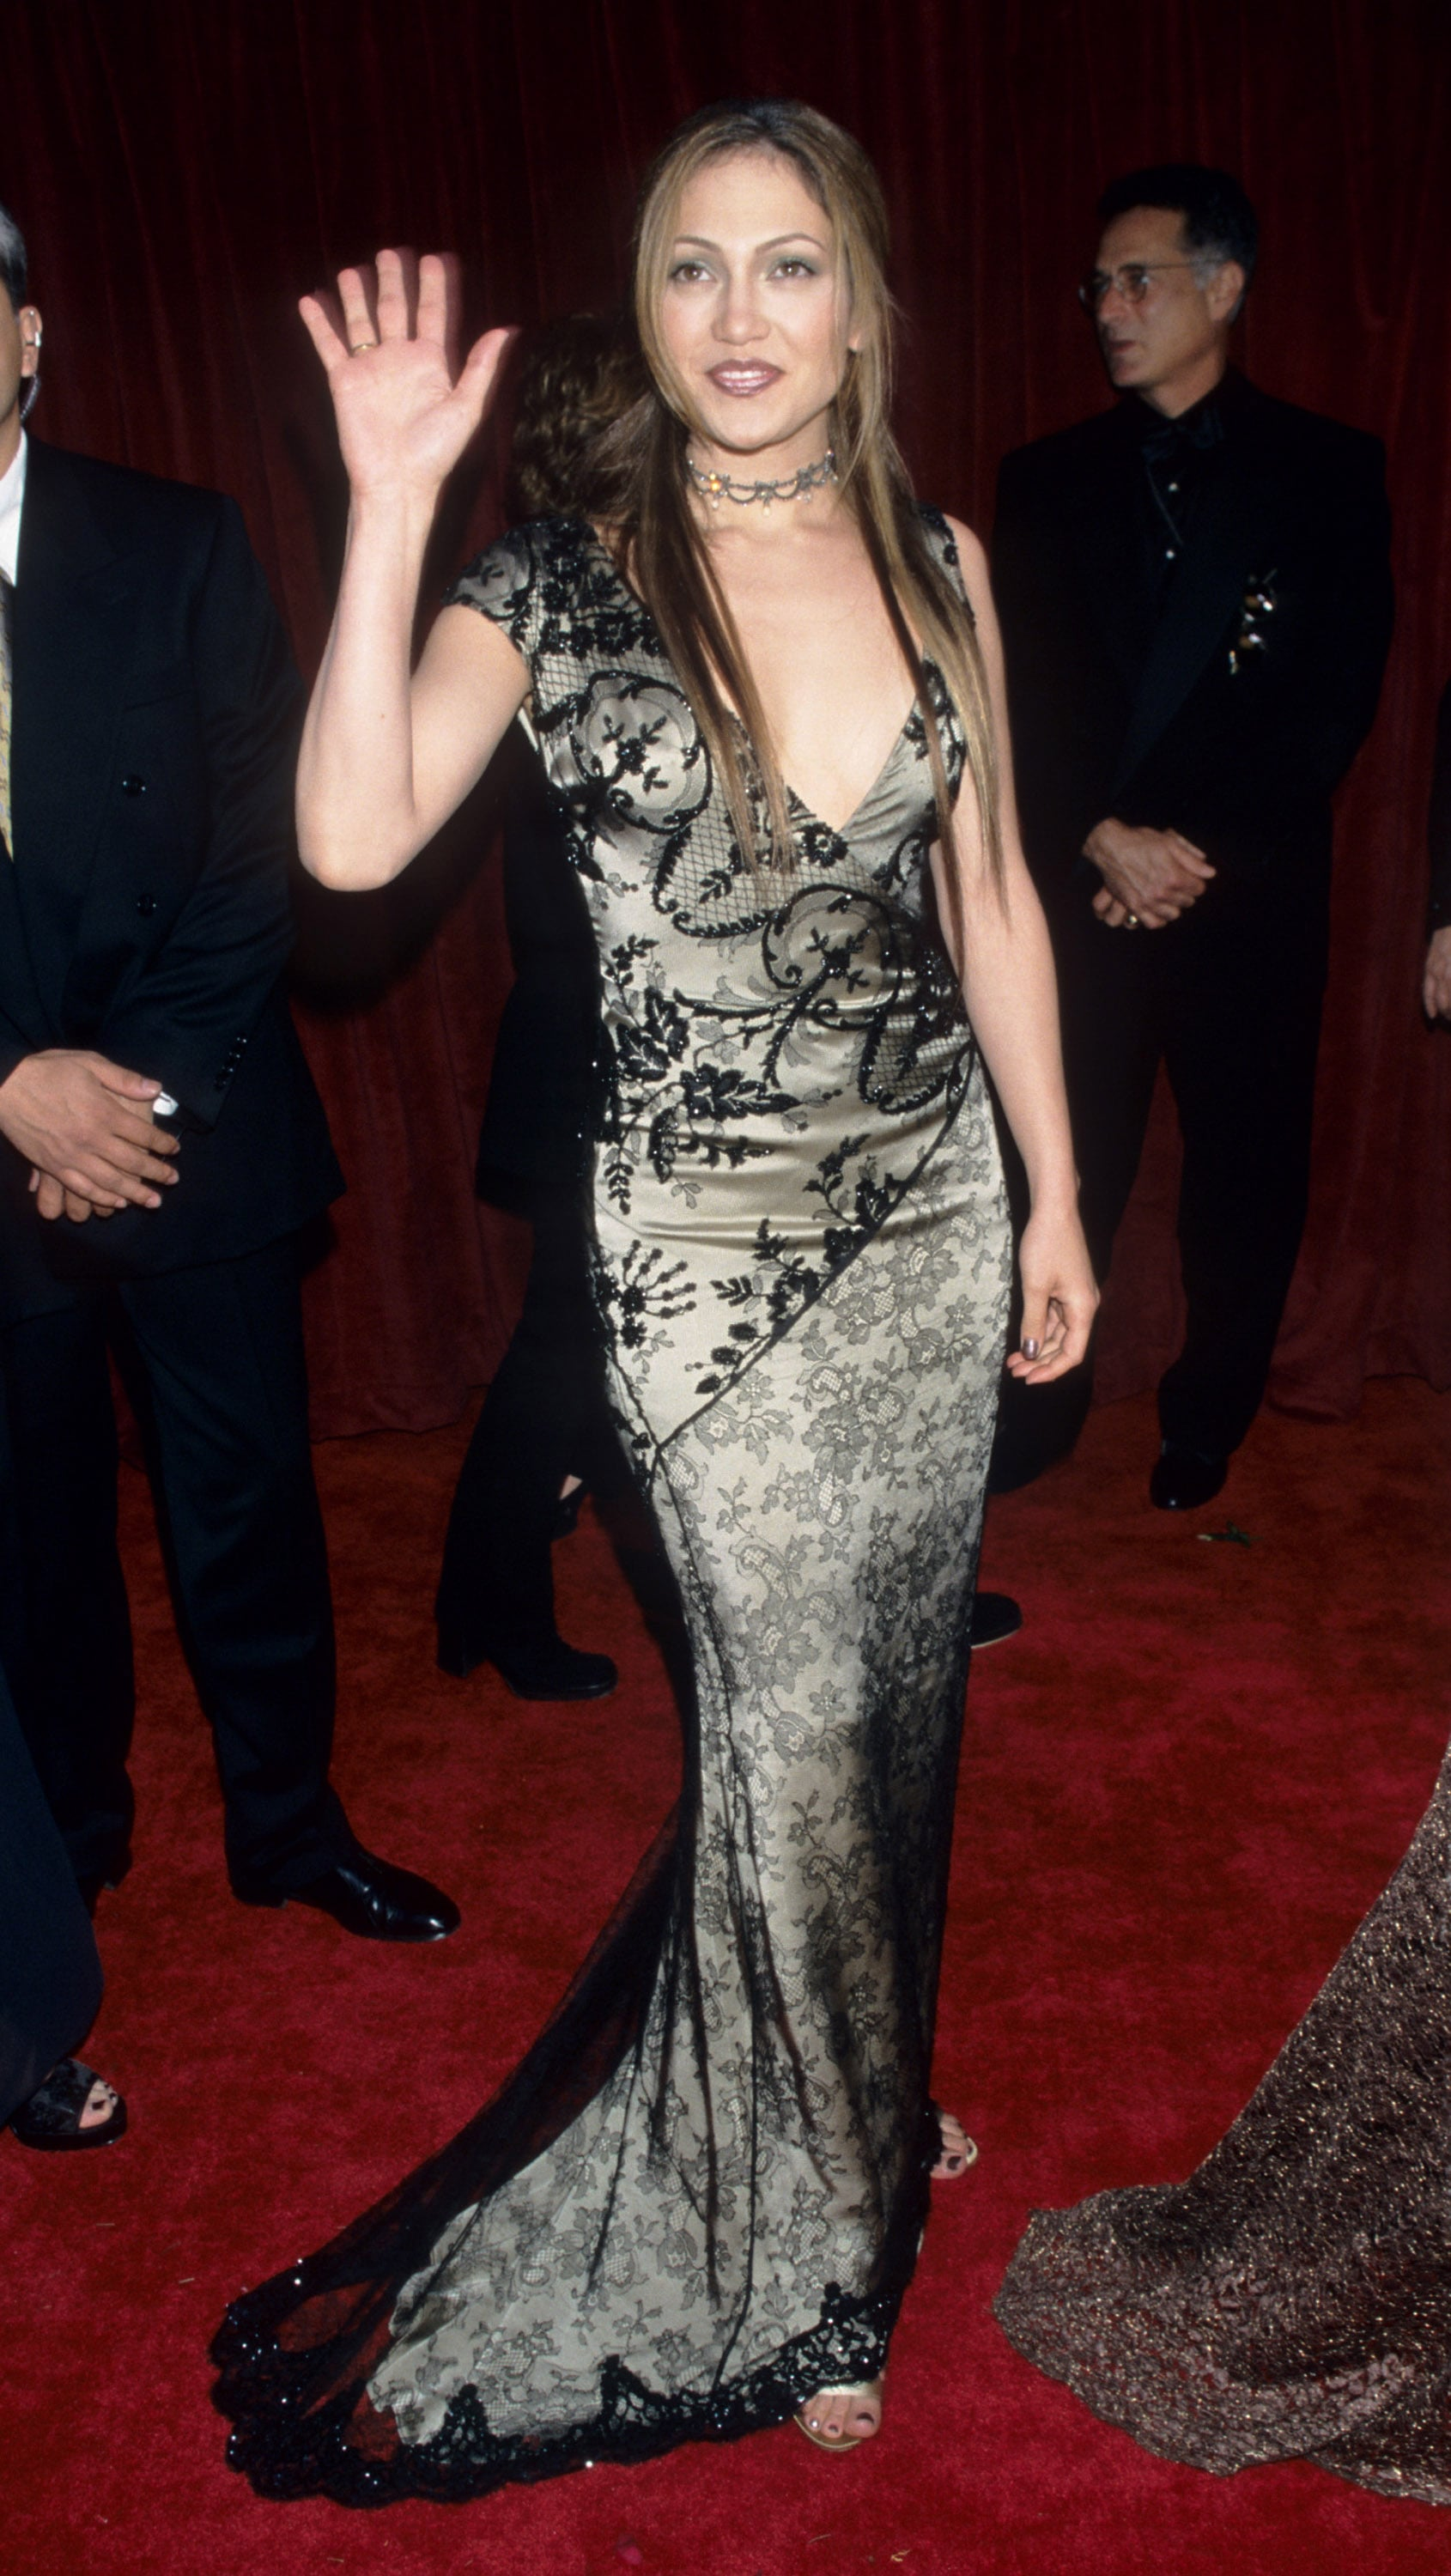 Going vamp on the Oscars red carpet in '98.